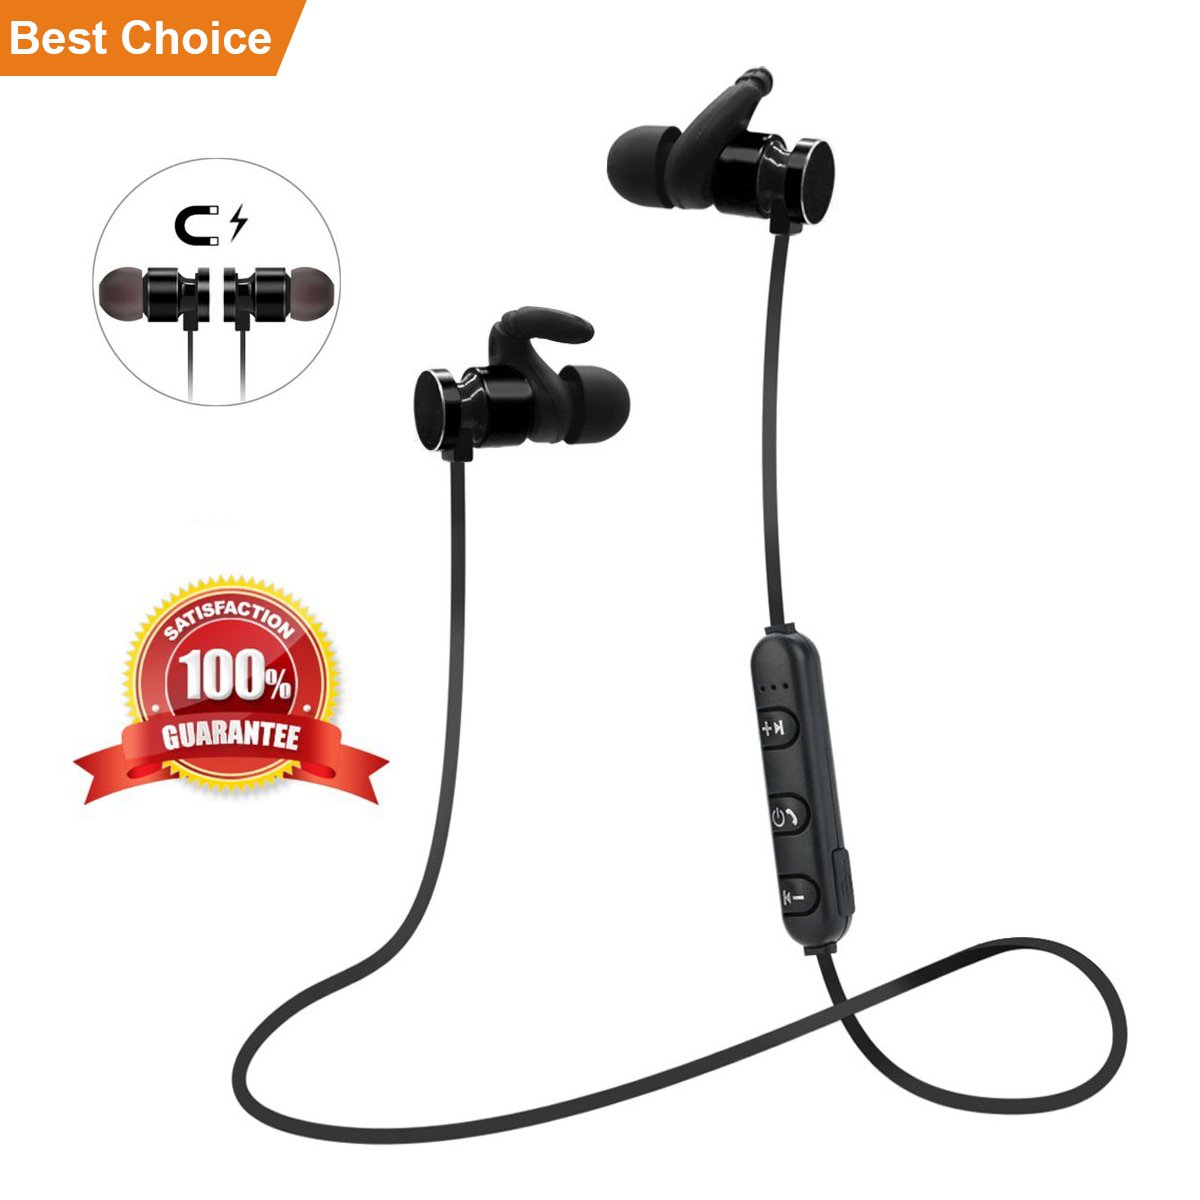 Wireless Bluetooth Headsets;SquRod Mini Metal Magnetic Necklace Earphone Noise Cancelling w/Mic Sweatproof Sport Workout Headphone for iPhone (Battery Upgrade 2018 Versoin)(Black)